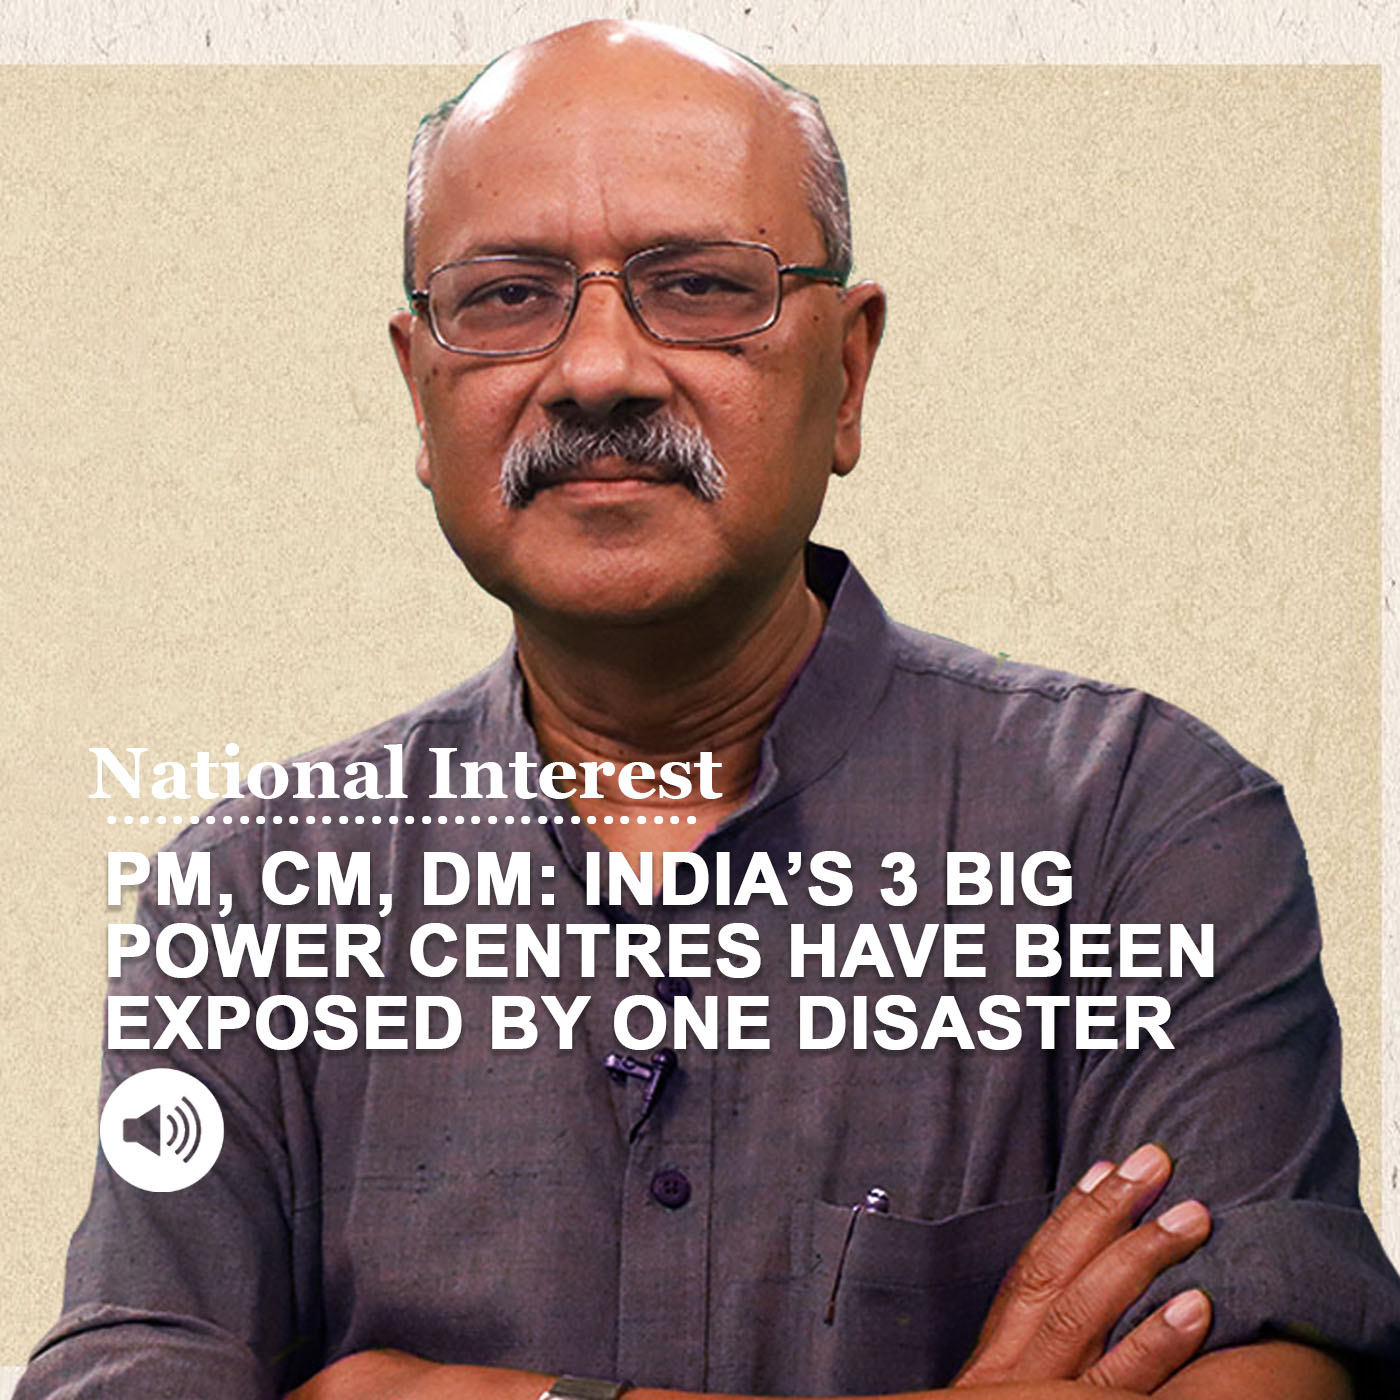 PM, CM, DM: India's 3 big power centres have been exposed by one disaster